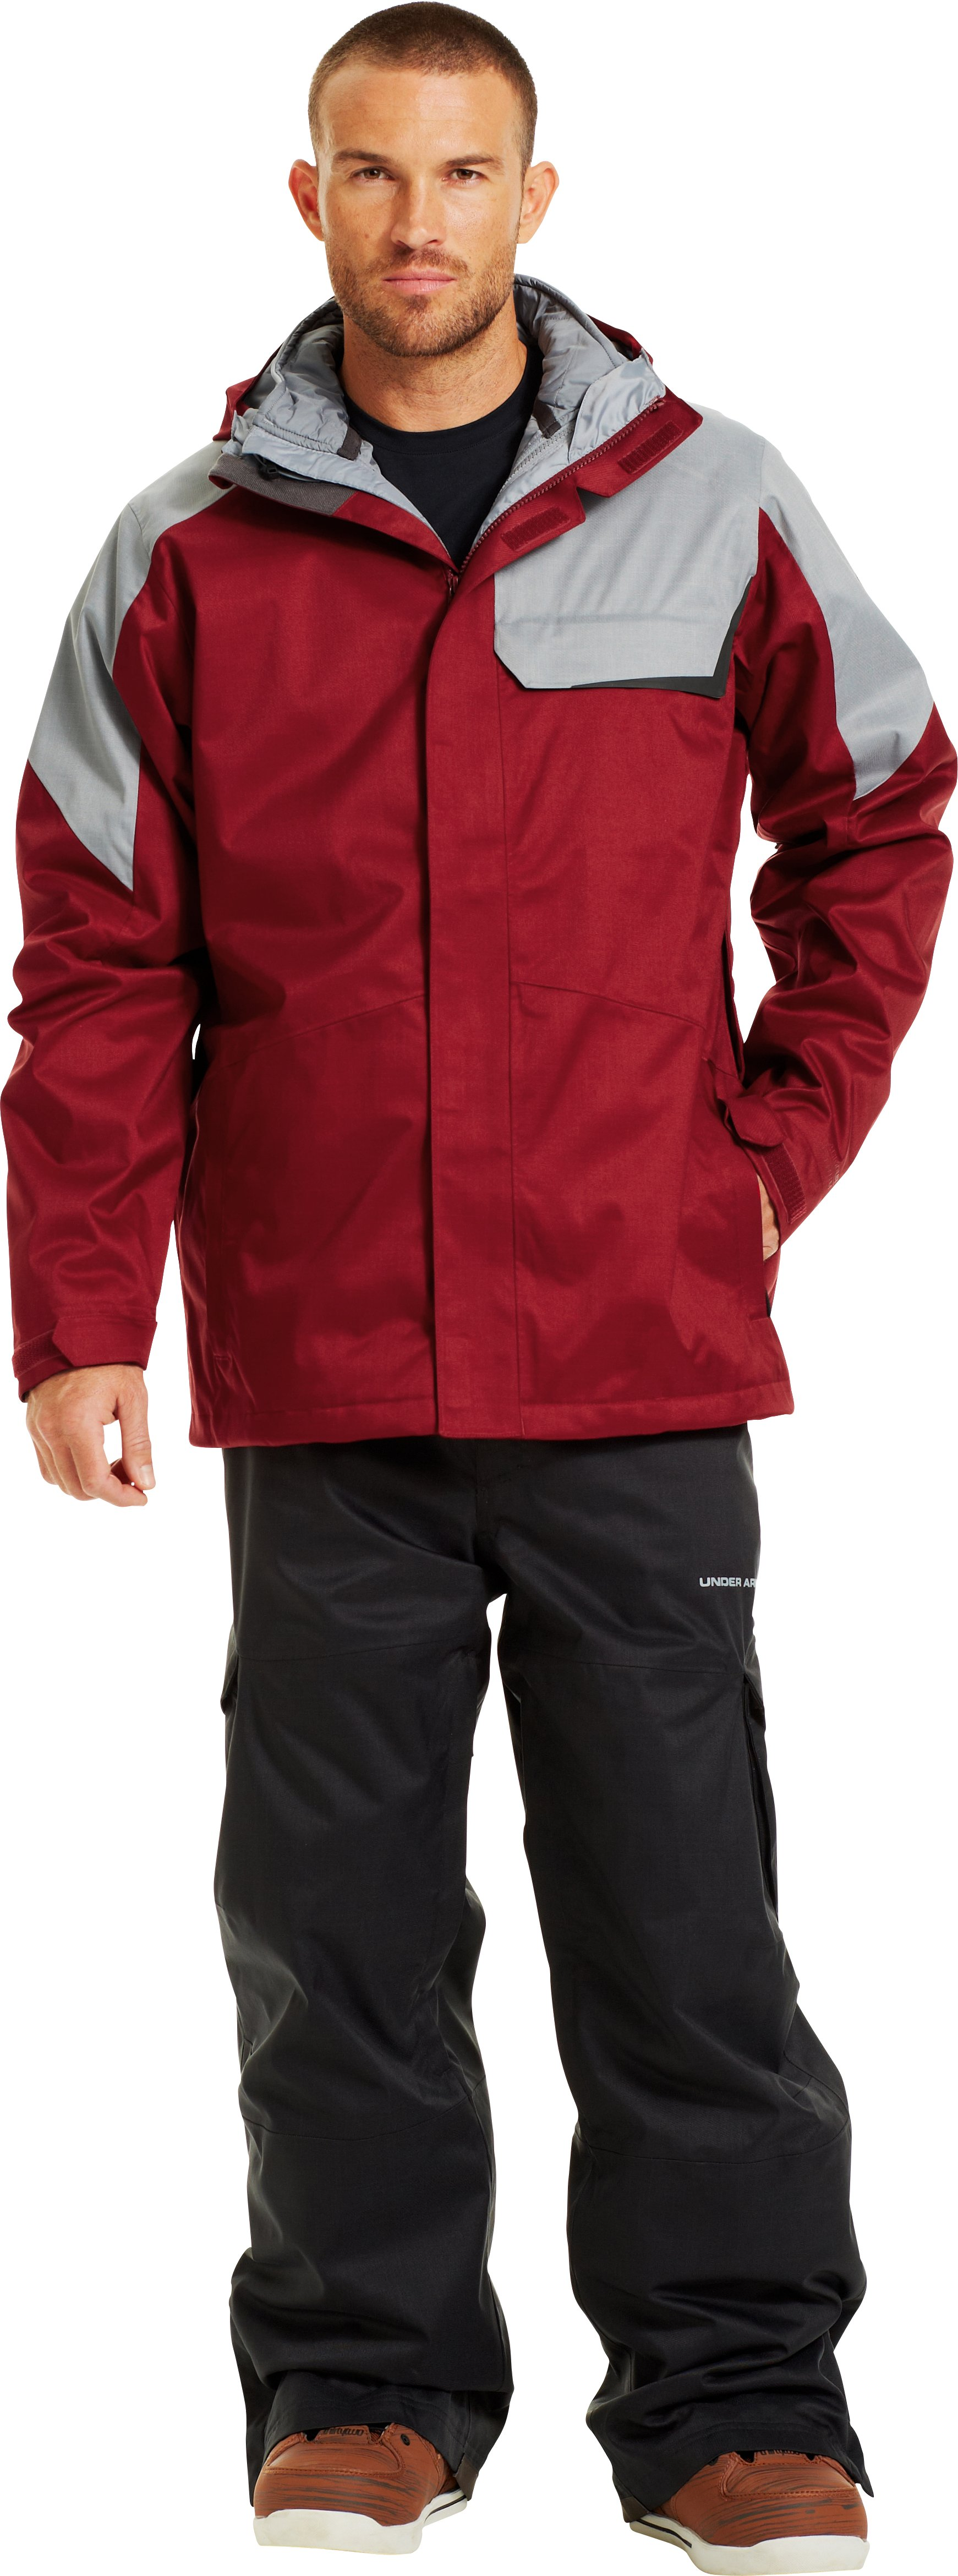 Men's ColdGear® Infrared Tripper 3-in-1 Jacket, CORDOVA, Front